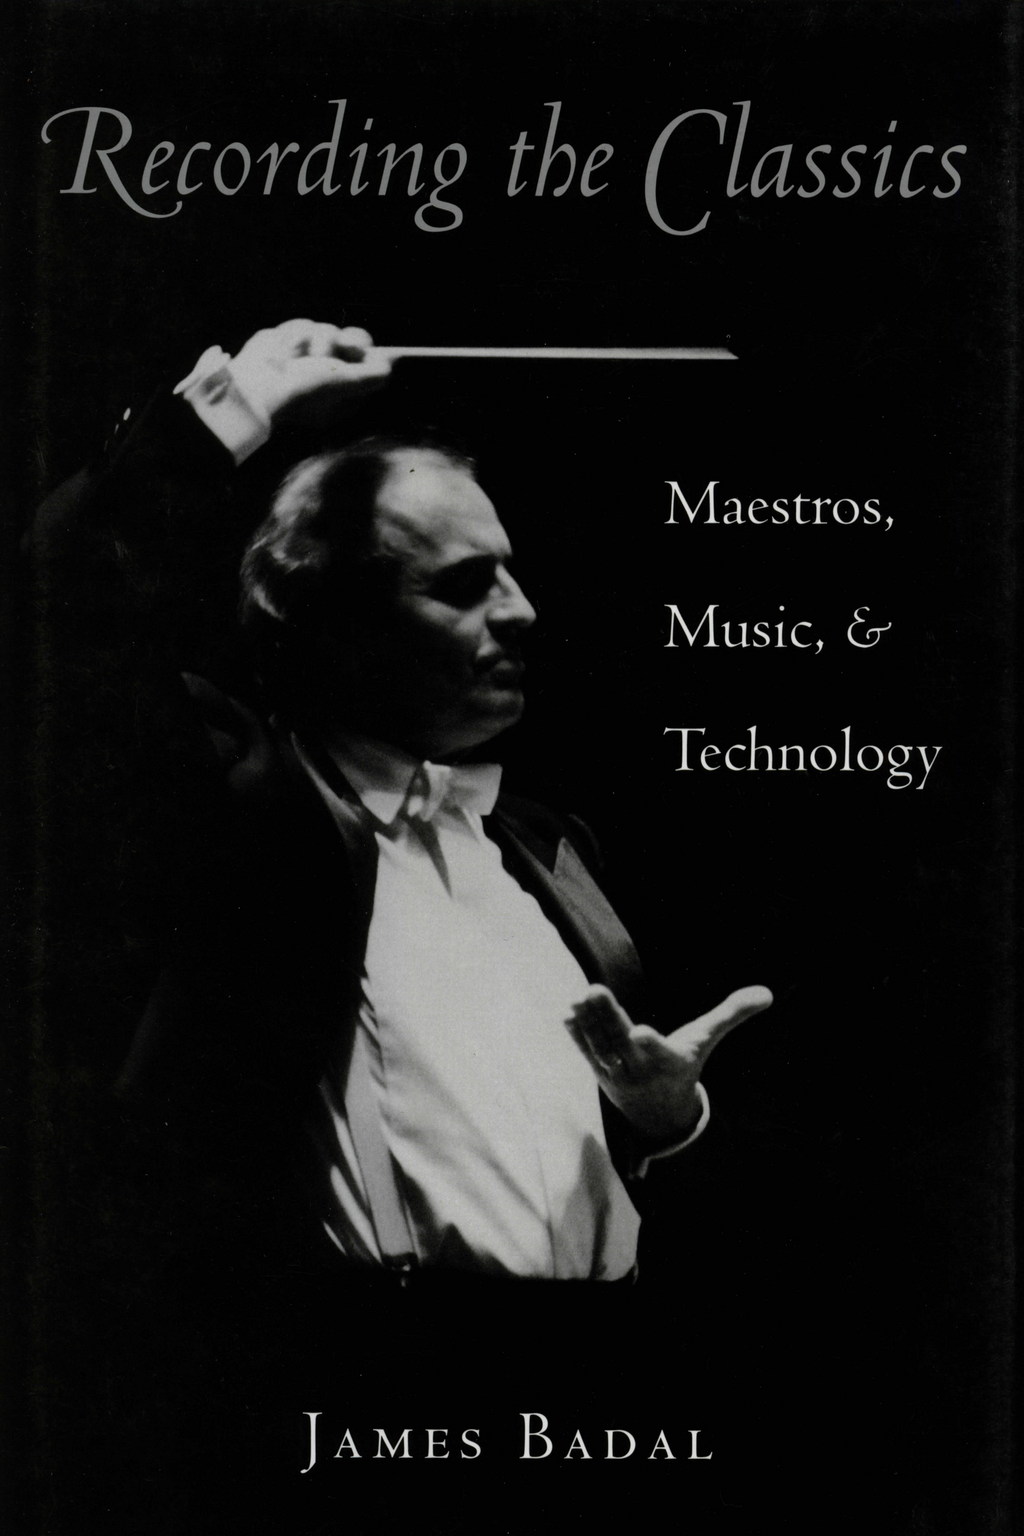 Recording the Classics: Maestros, Music and Technology